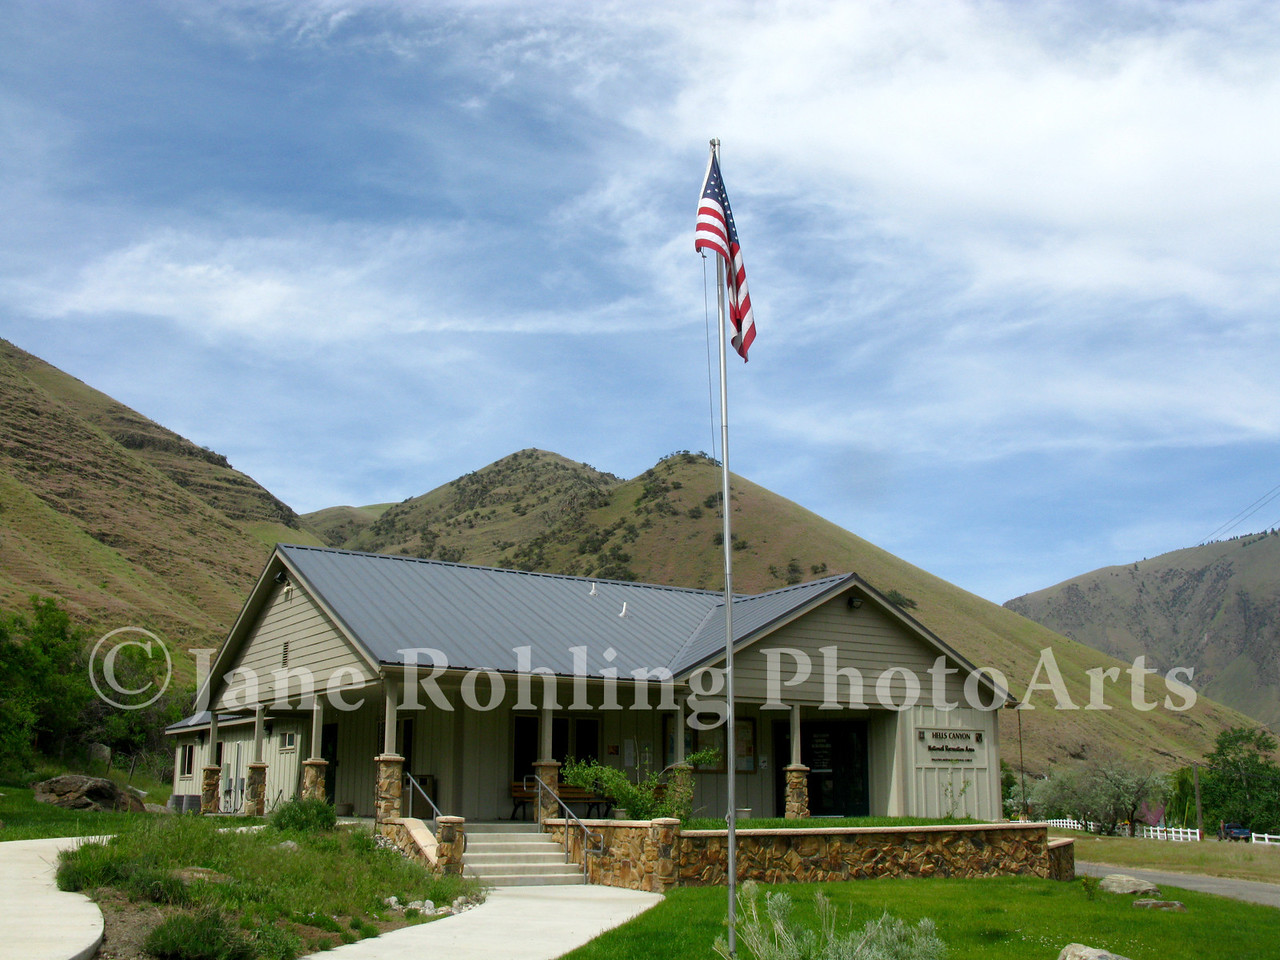 US Forest Serivce Hells Canyon National Recreation Area, ranger station, Riggins, Idaho.